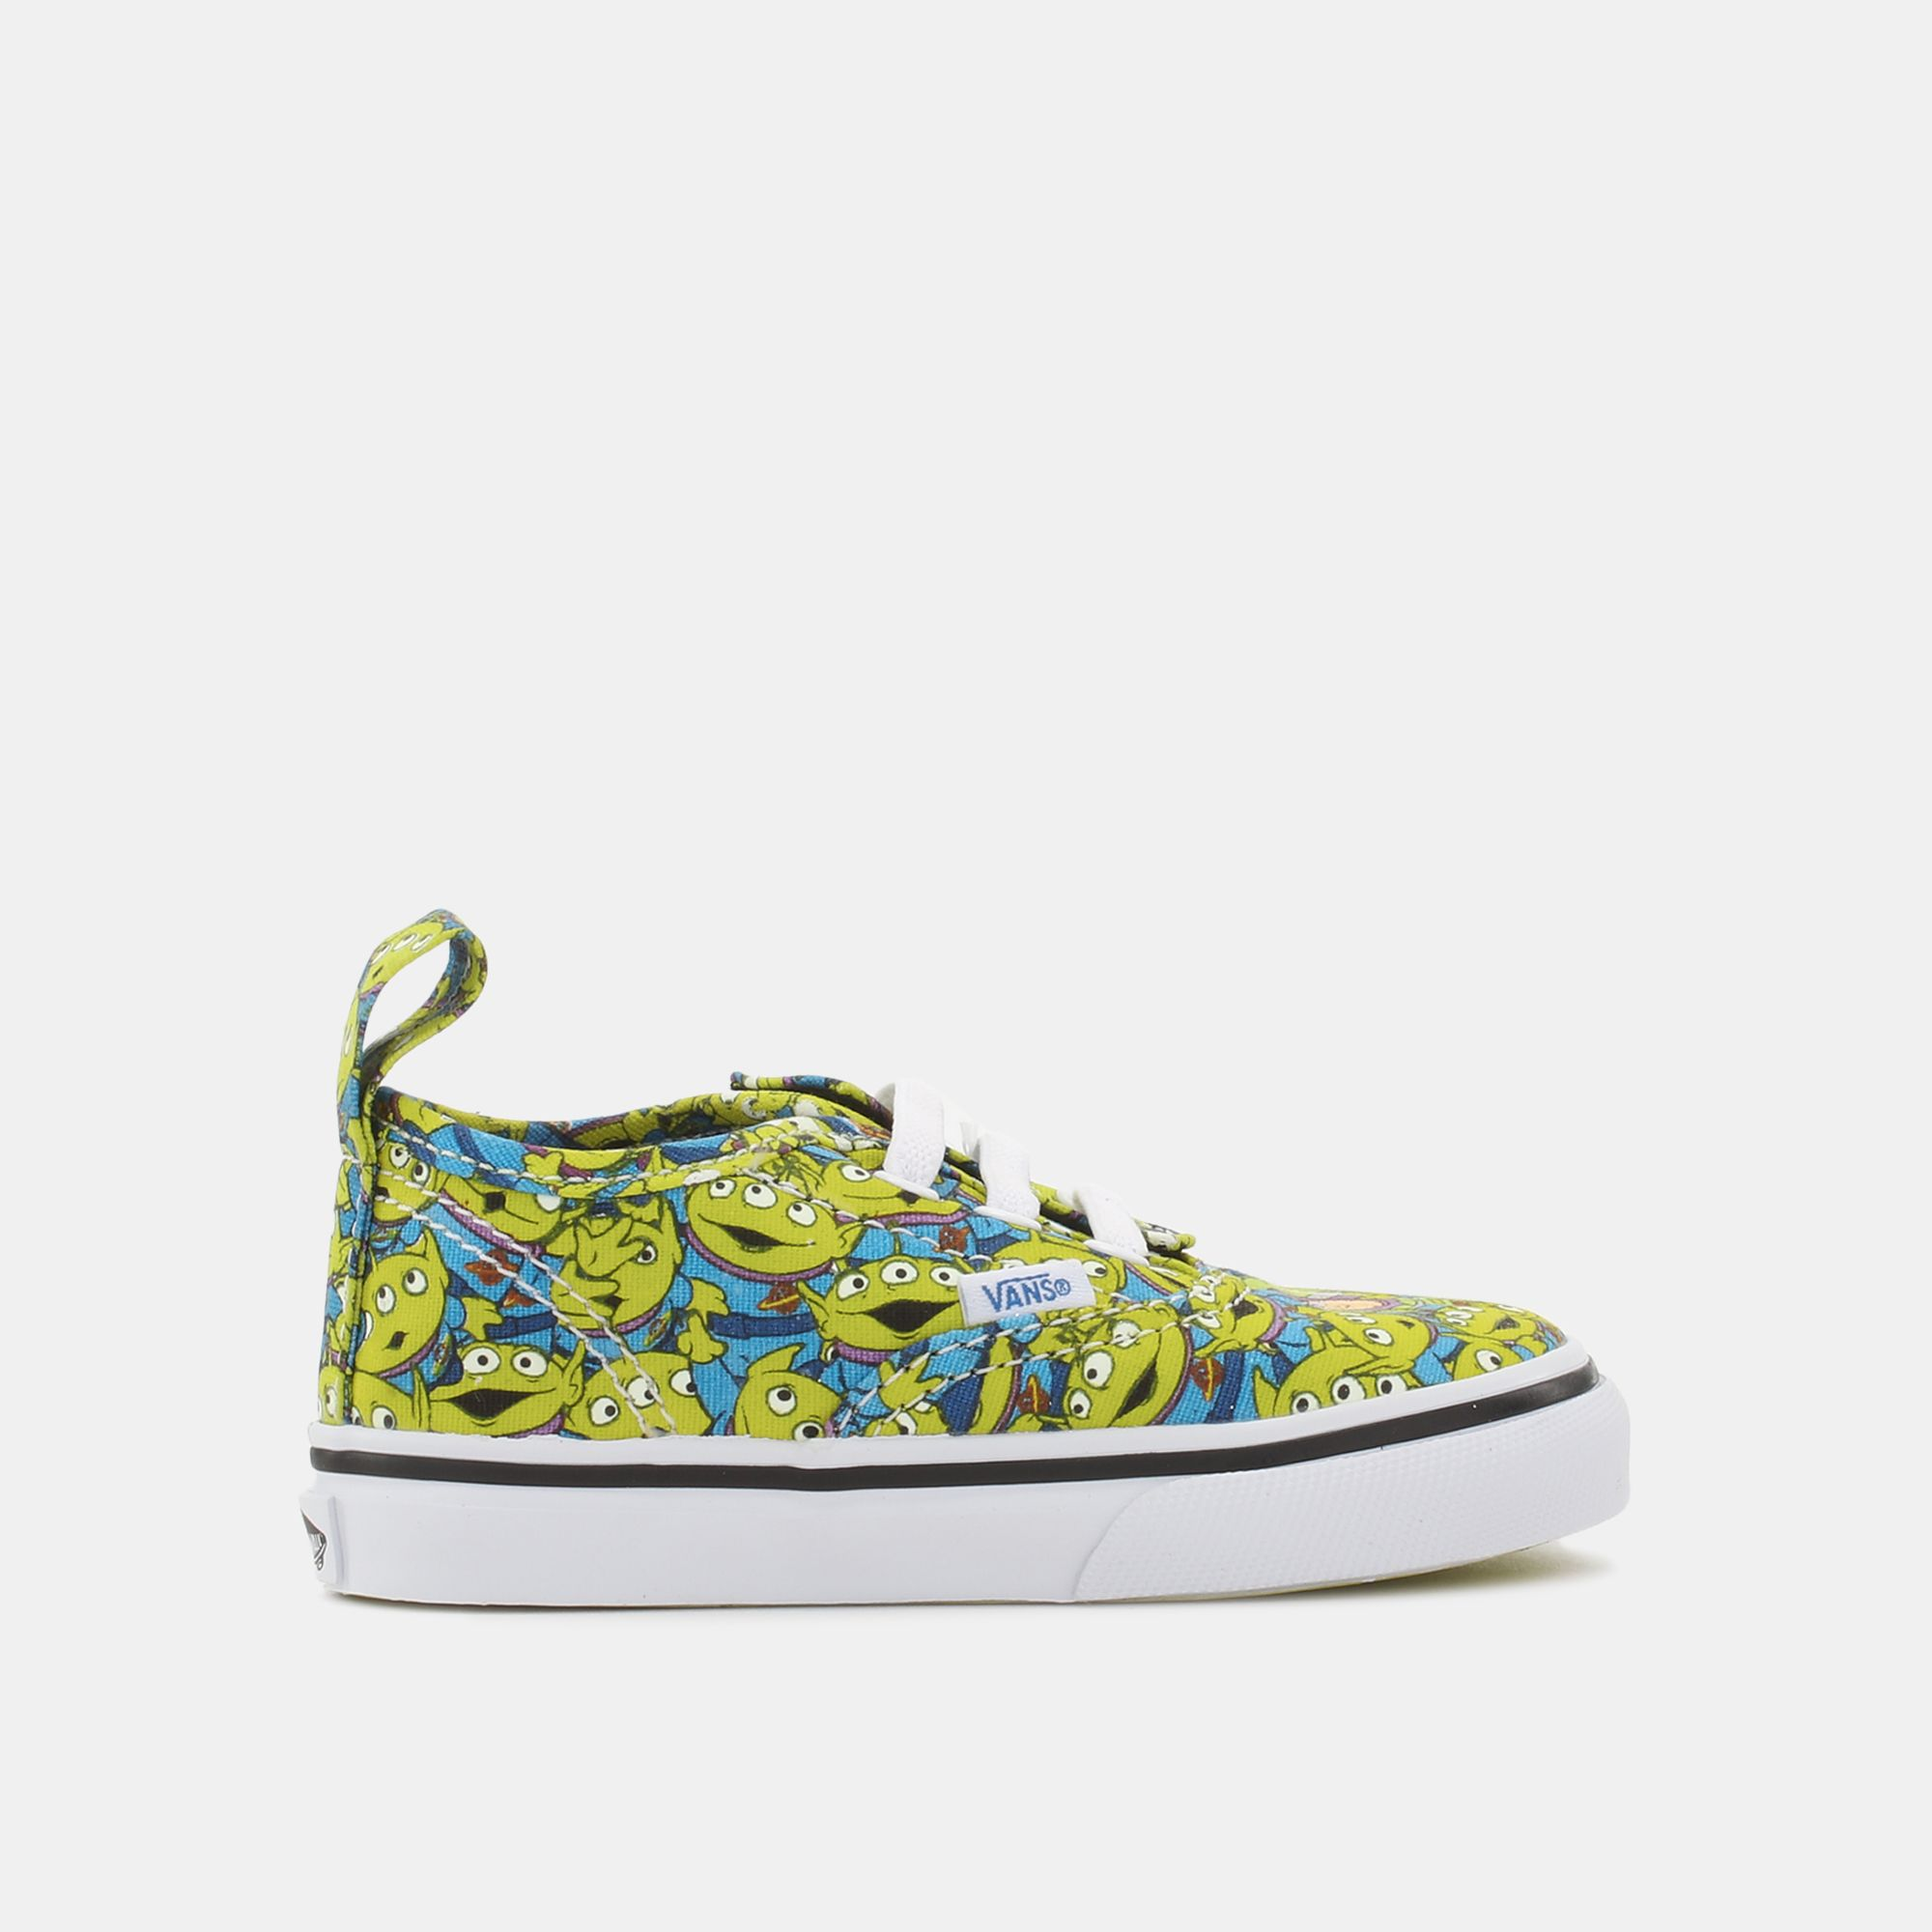 c26066eb3e Shop Yellow Vans Authentic V Lace Shoe - Toy Story Edition for Kids by Vans